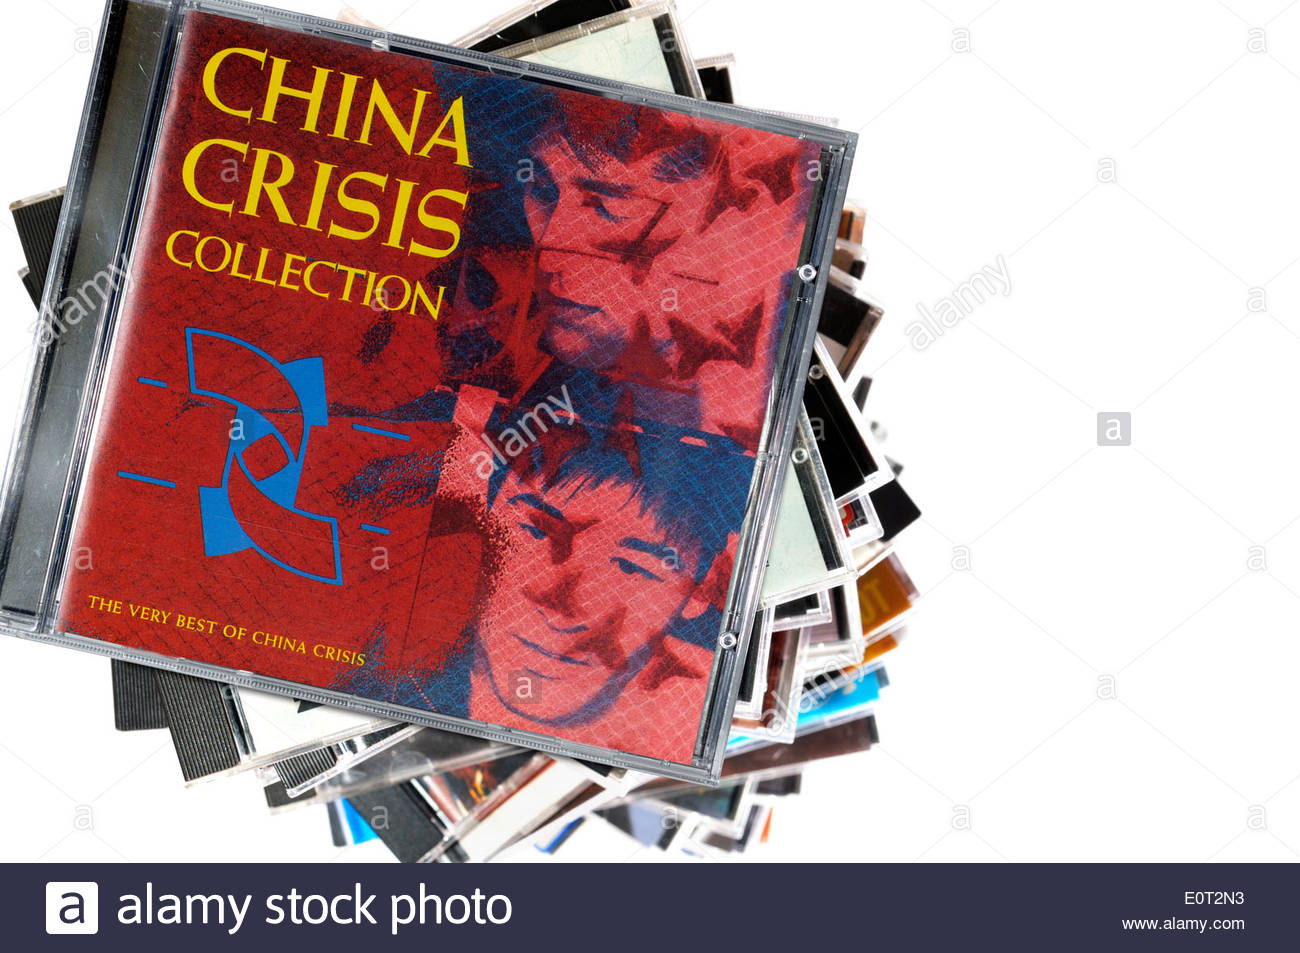 China Crisis collection album, piled music CD cases, England - Stock Image